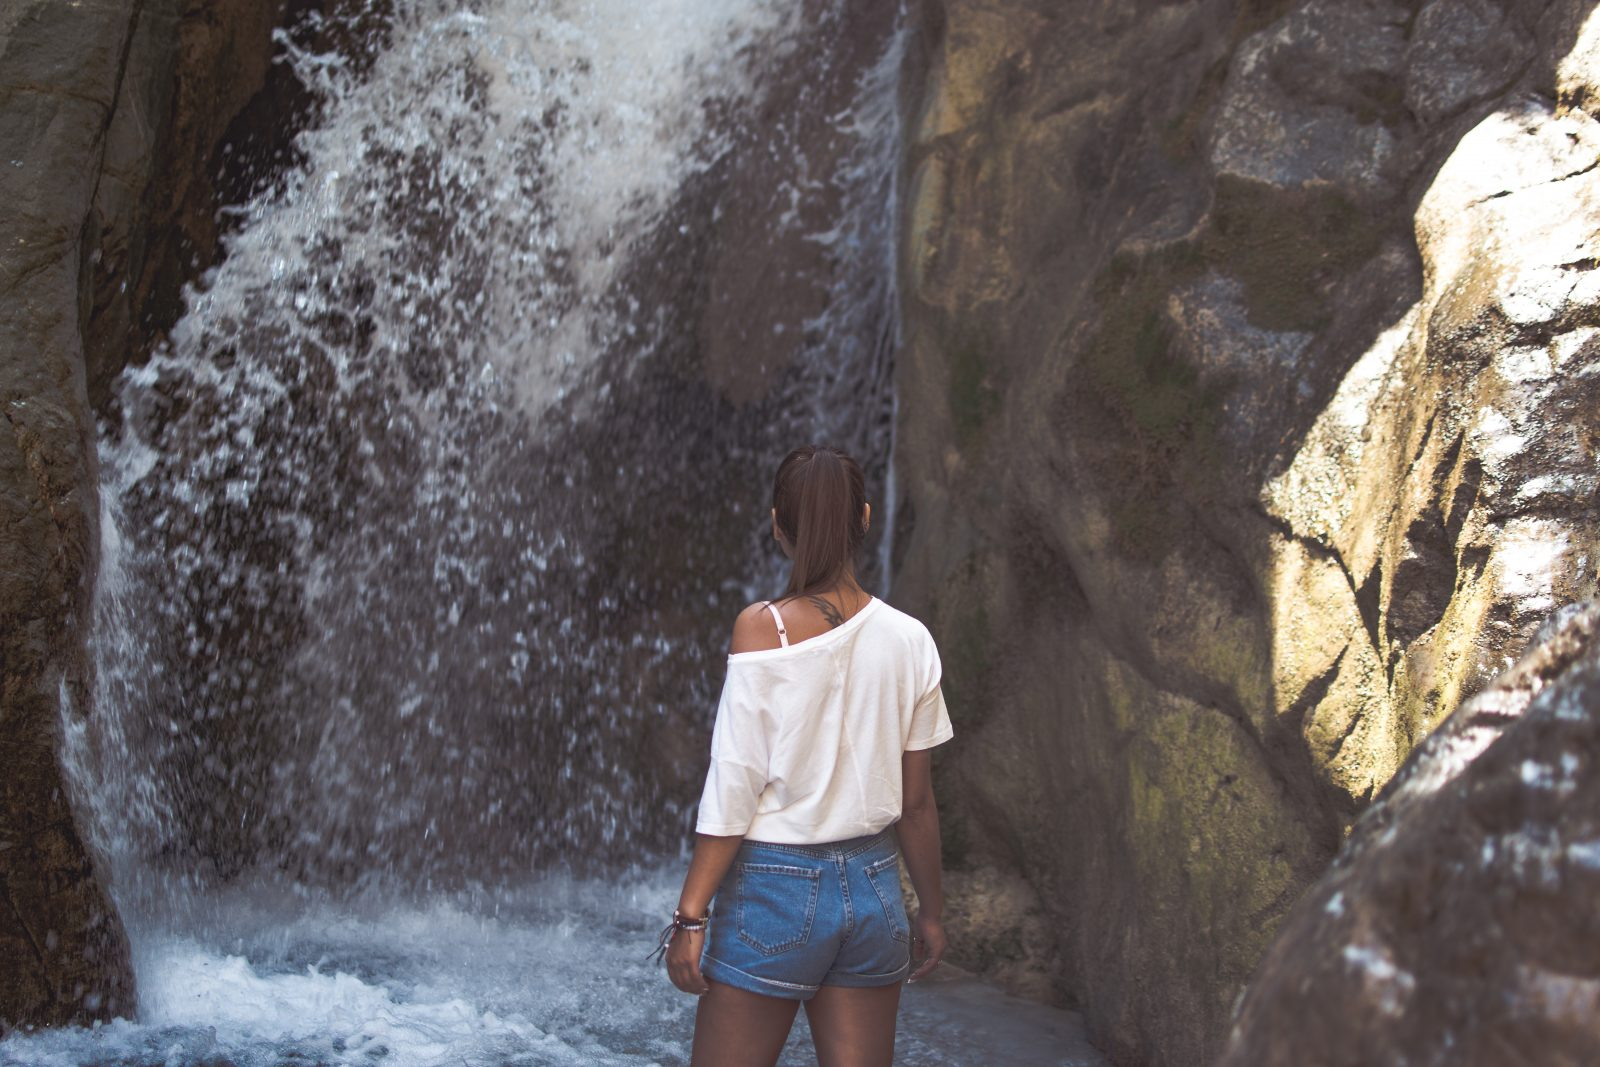 A girl and a waterfall